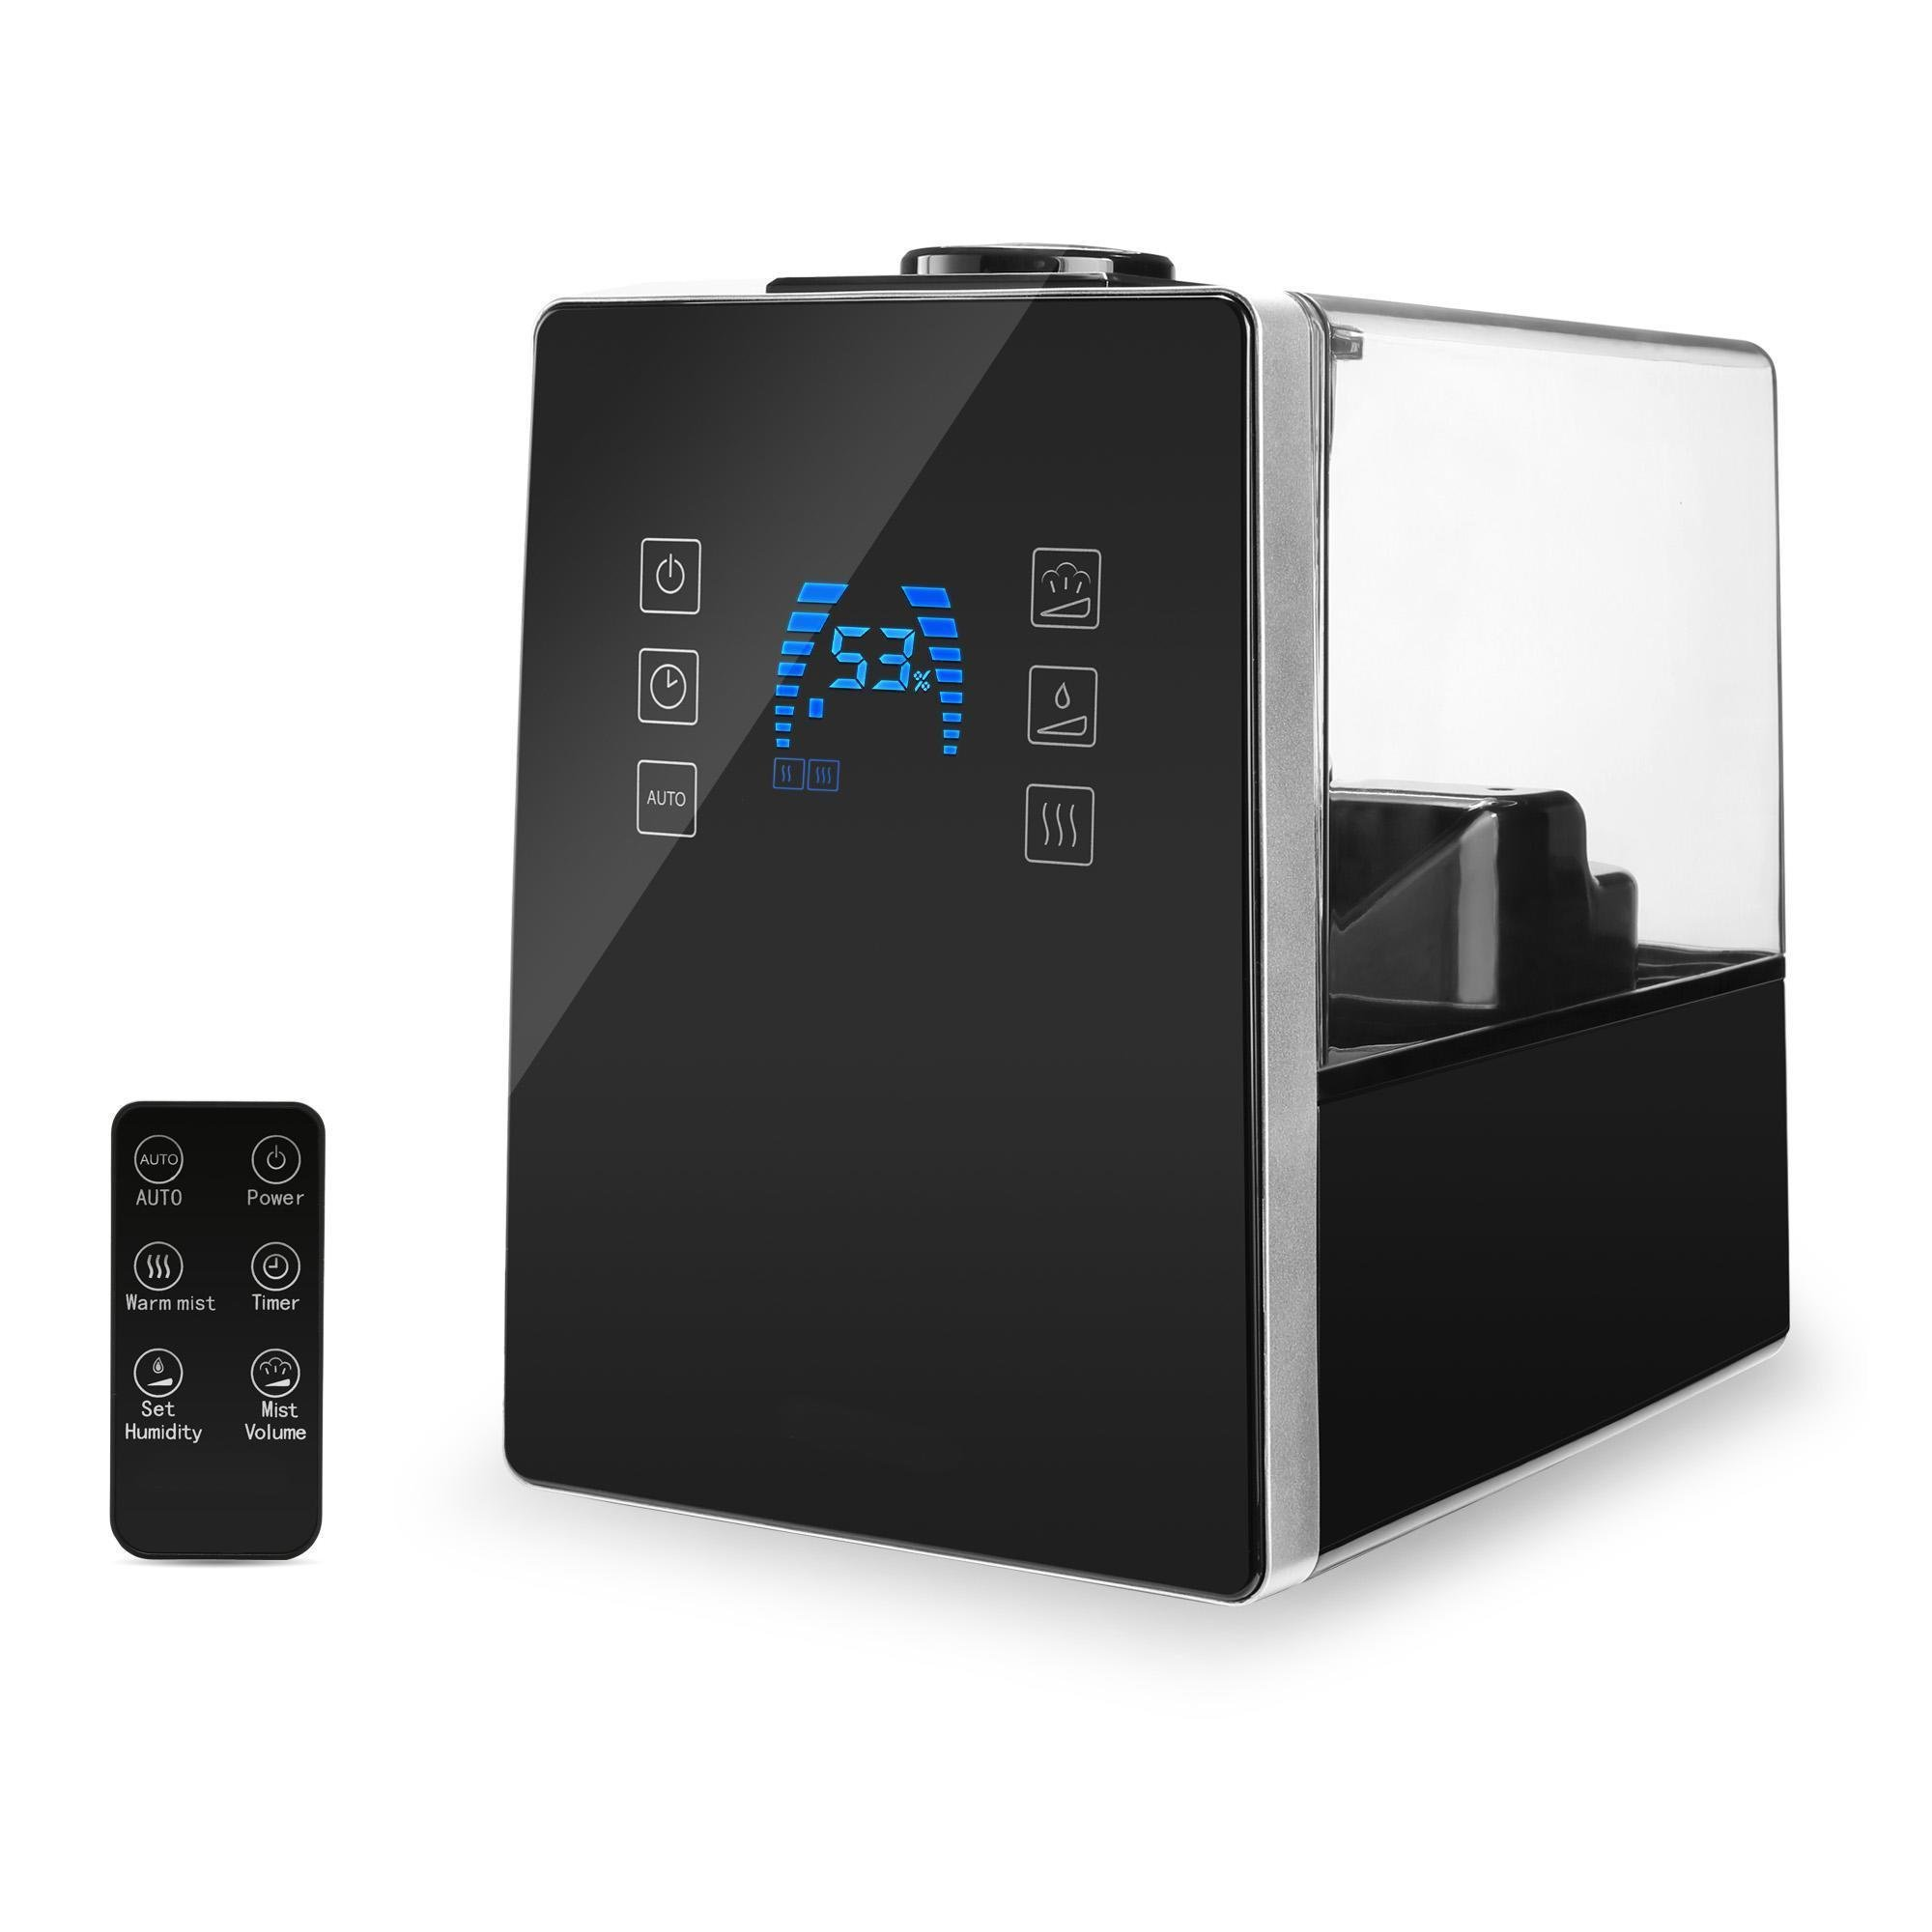 Cool/Warm Ultrasonic Humidifier 6L/1.6 Gallon Capacity, Remote Control, Waterless Auto Shut-off, LED Display